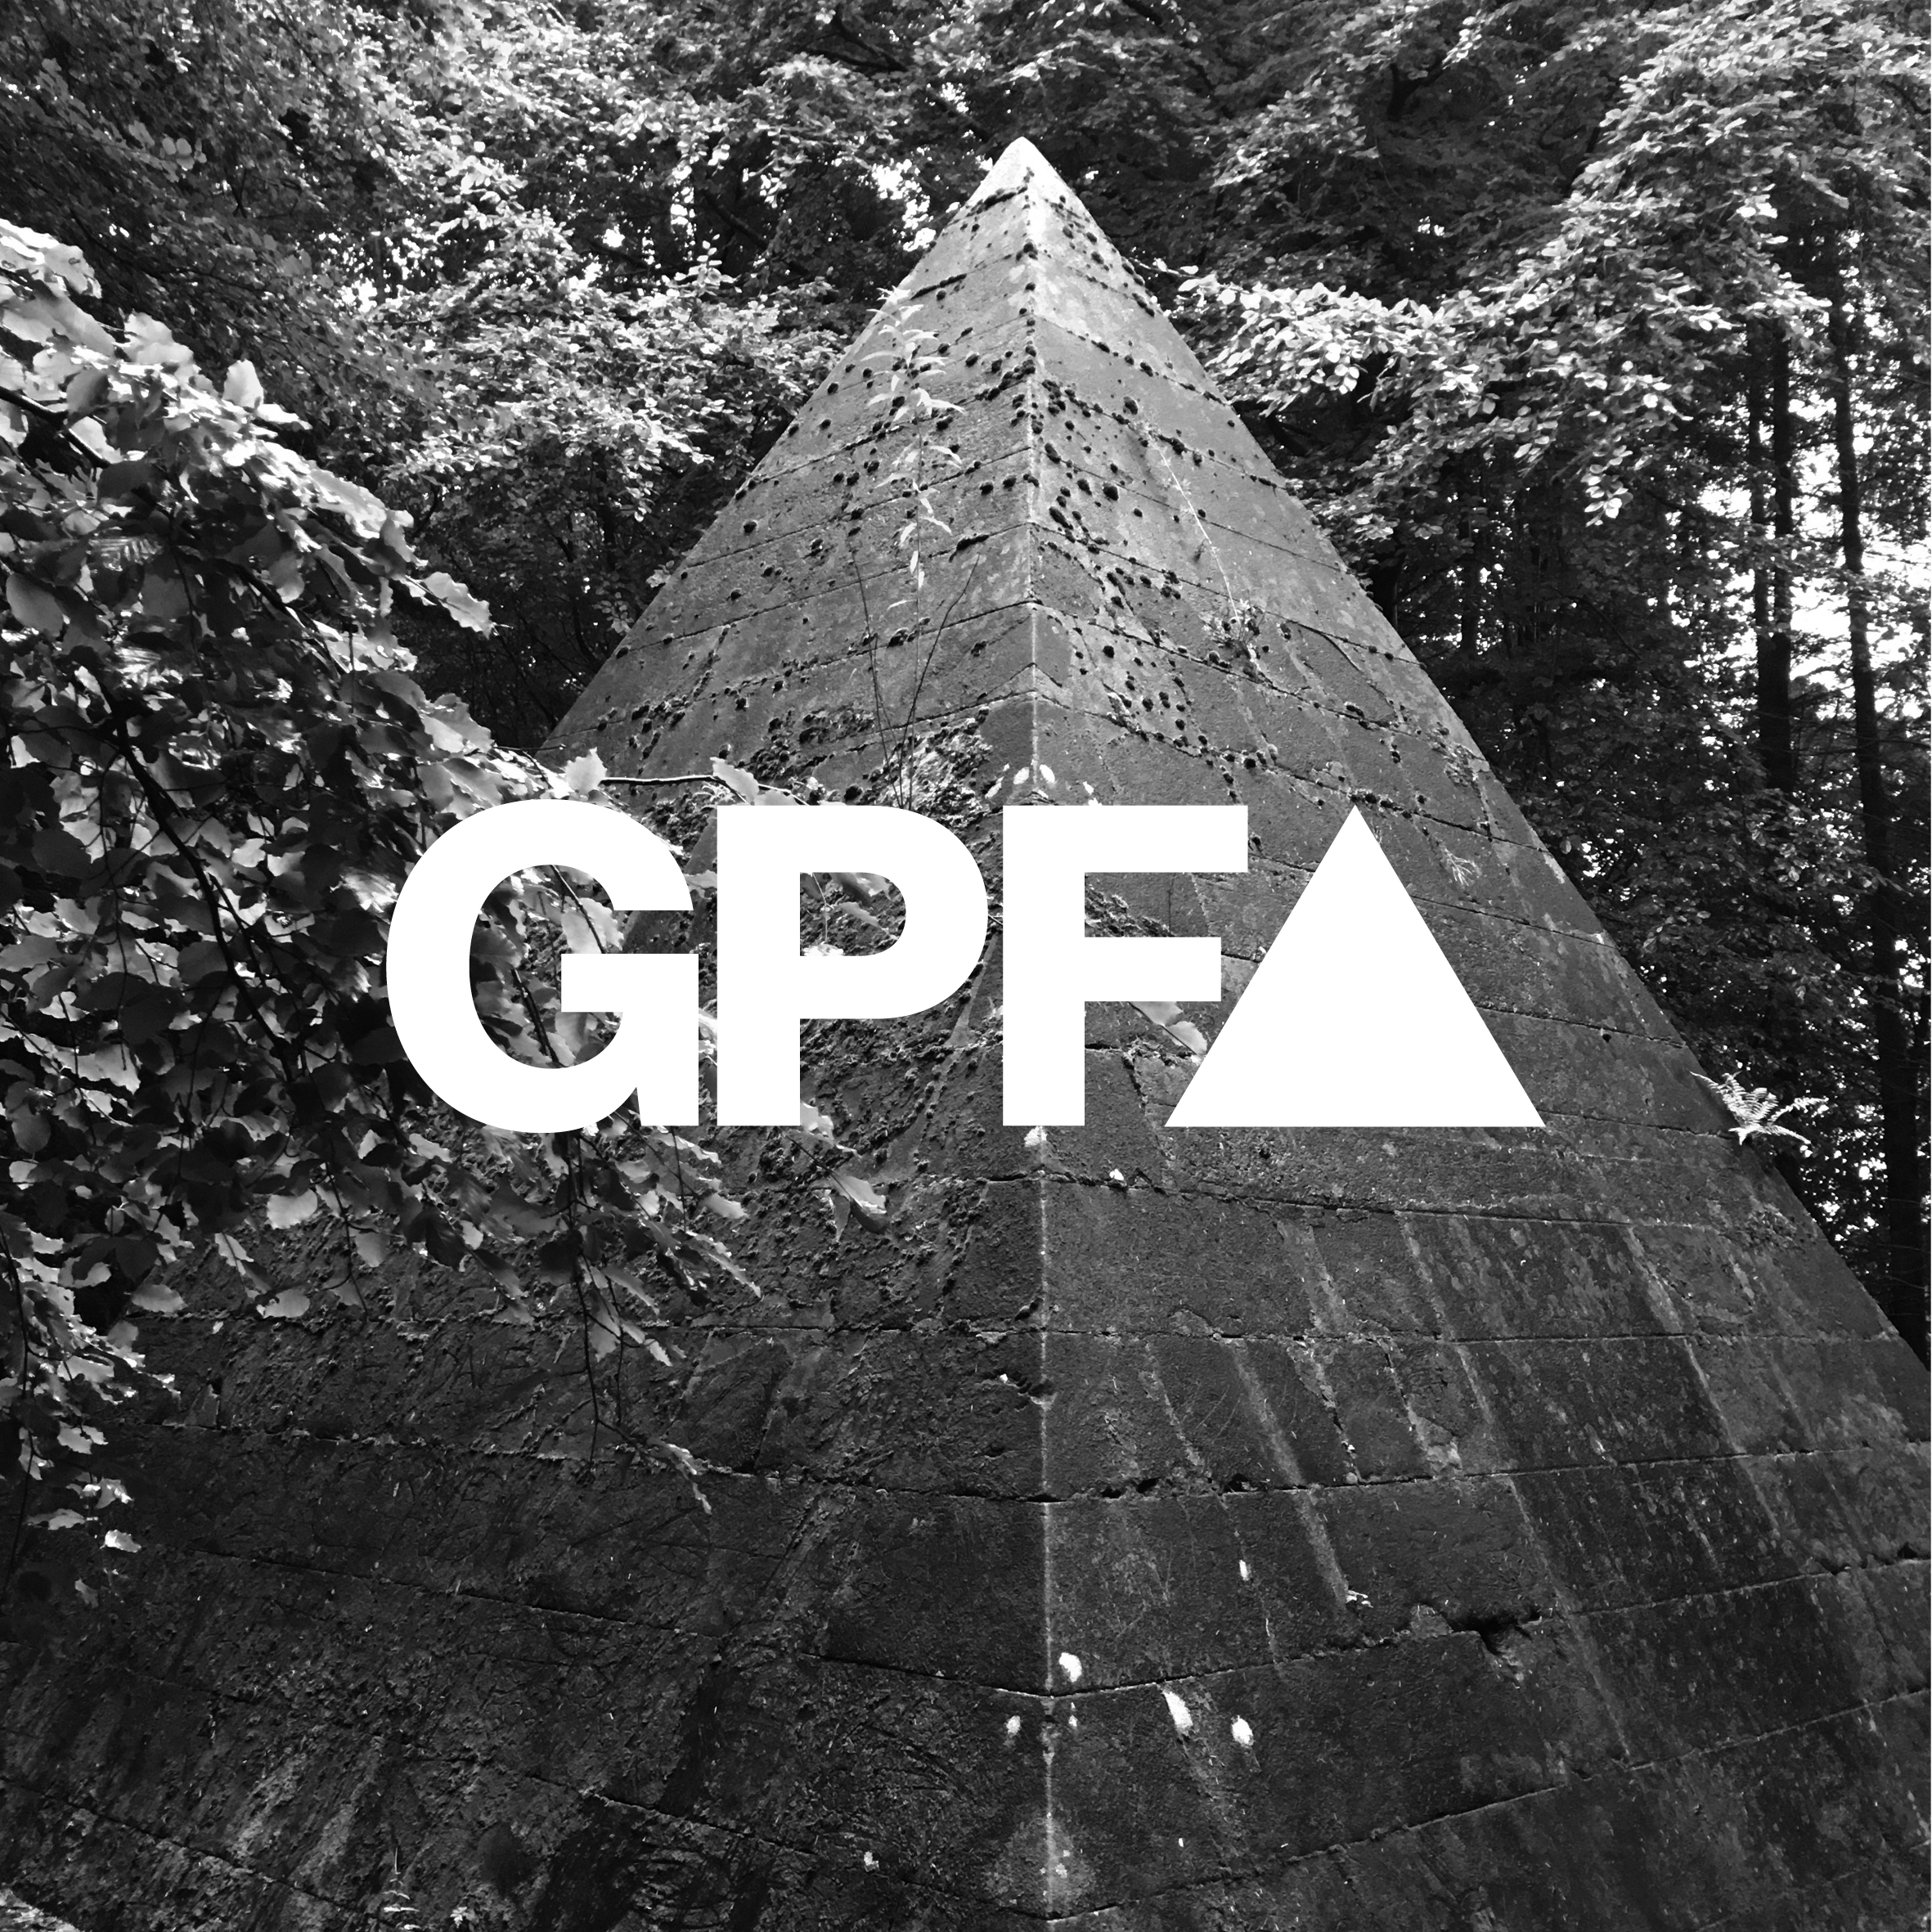 Cover image: Garvagh People's Forest